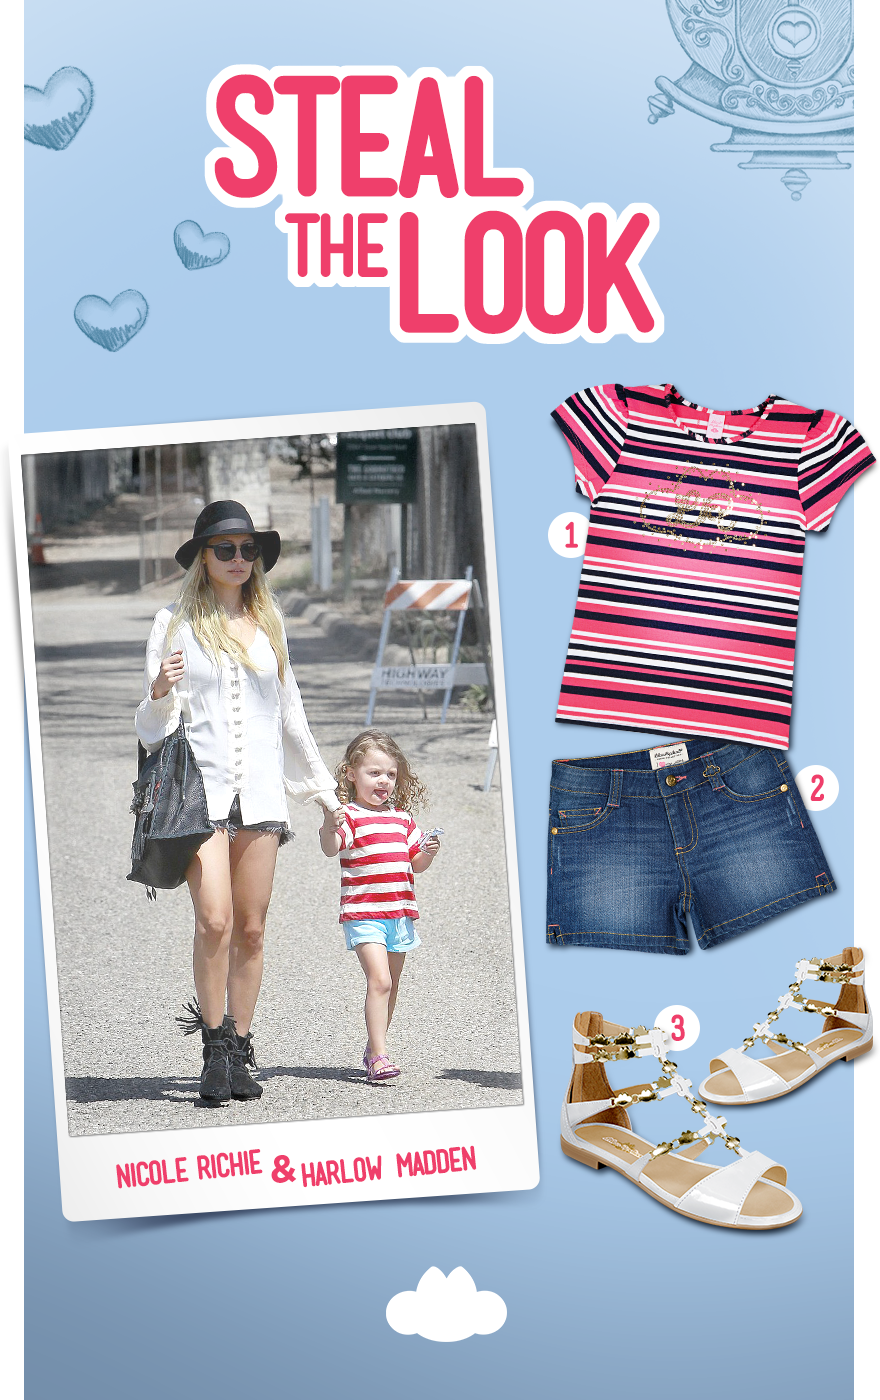 Steal the look – Visual de verão